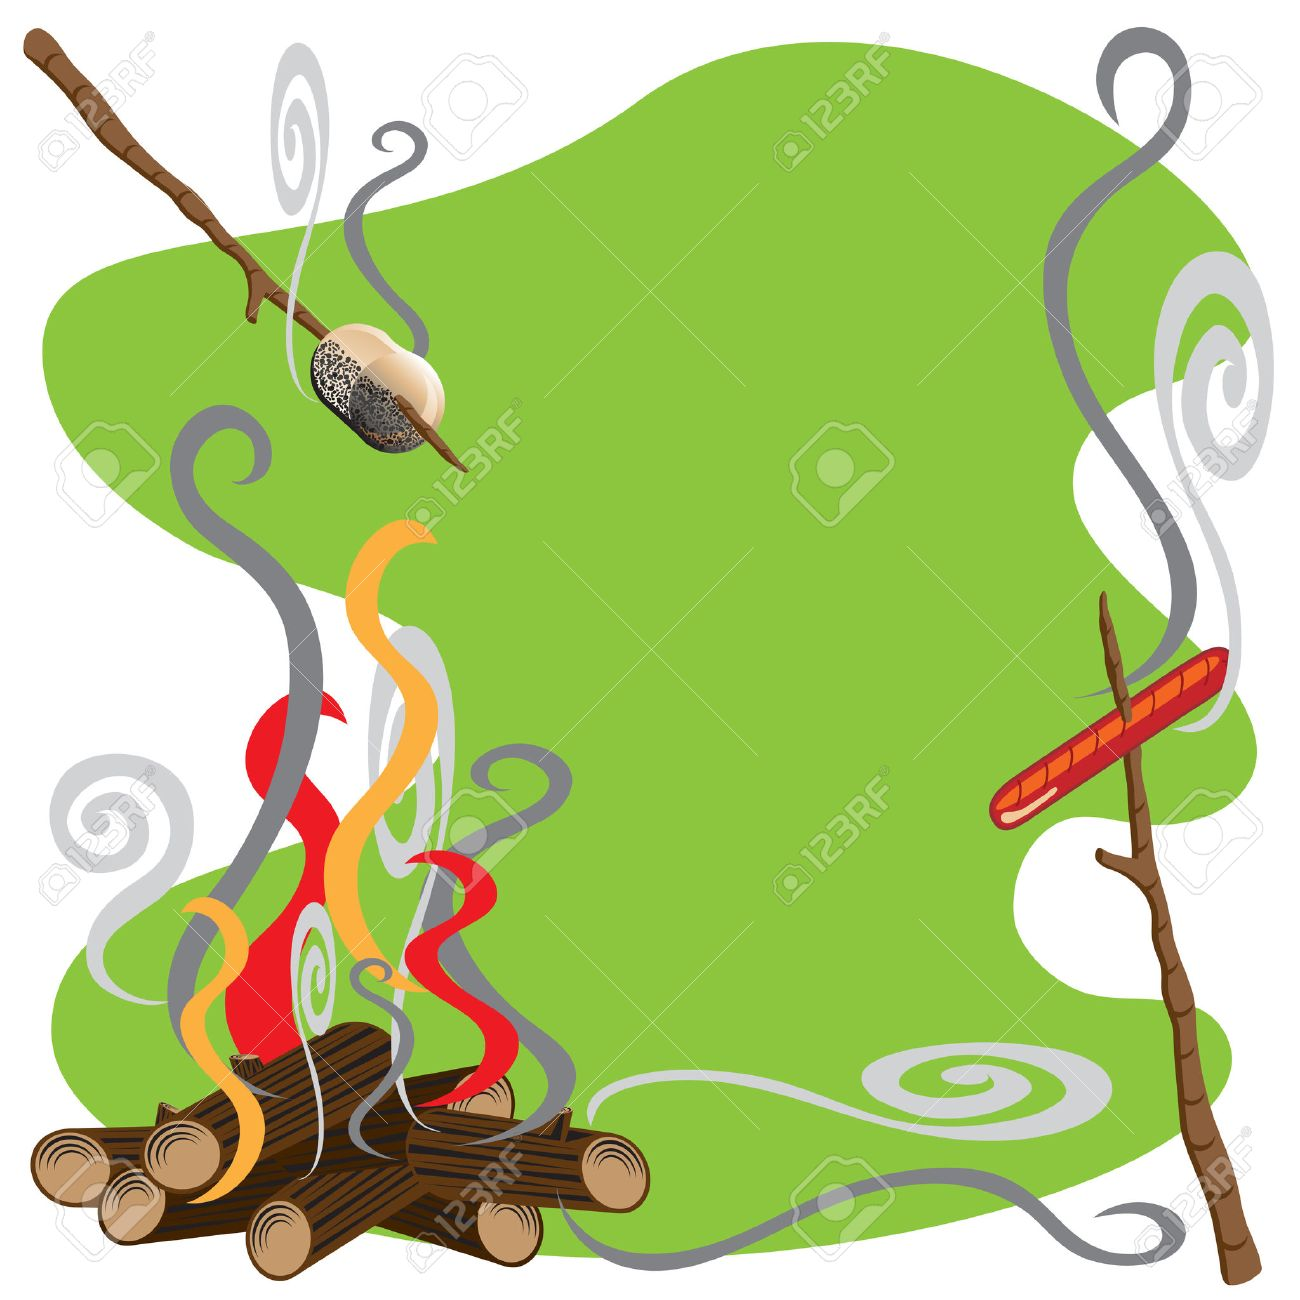 Roasting Marshmallows And Hotdogs Over A Campfire Stock Vector